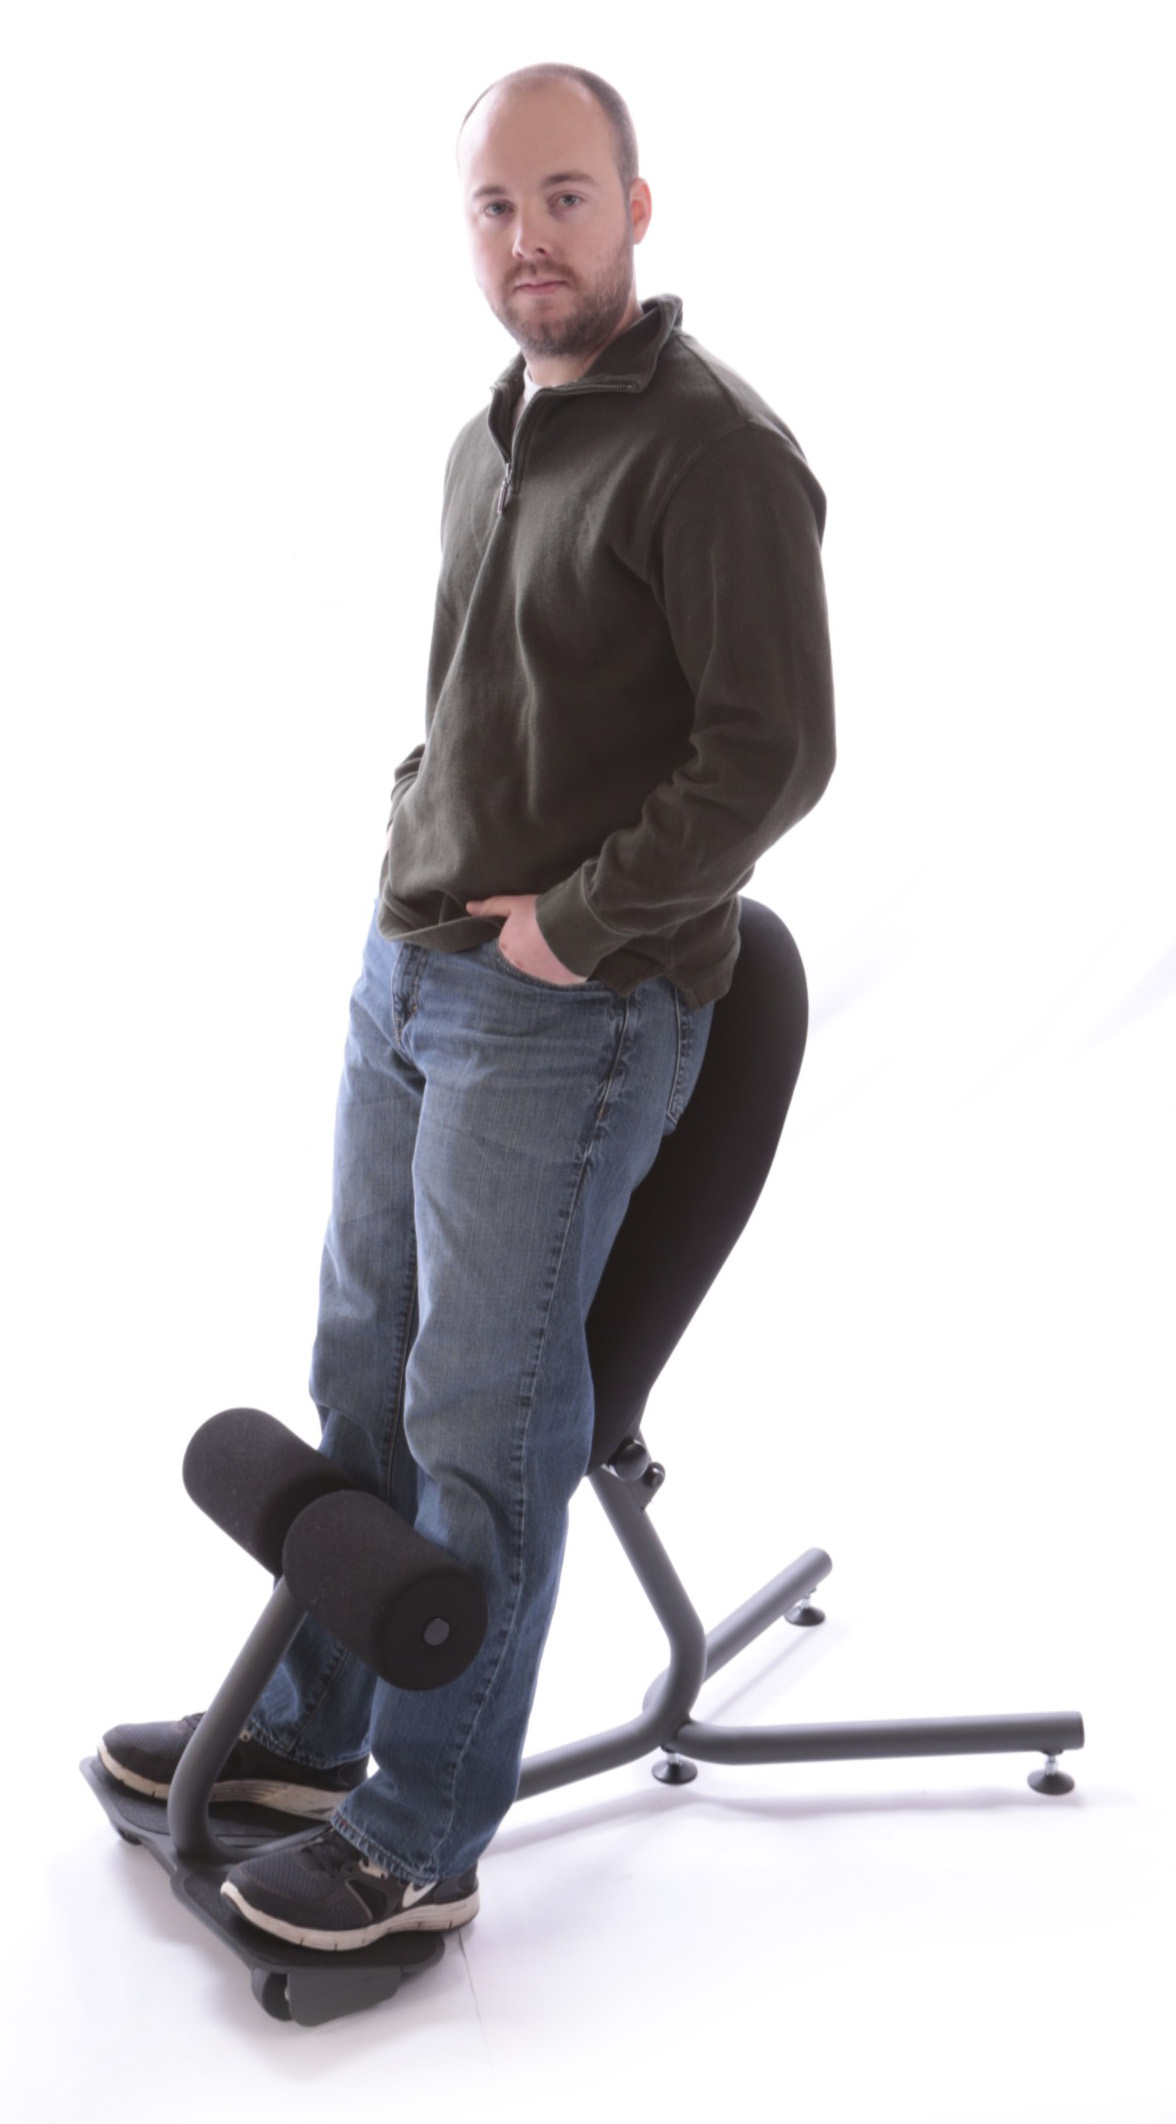 Standing Desk Chairs New Office Chair Promotes Active Movement At Work